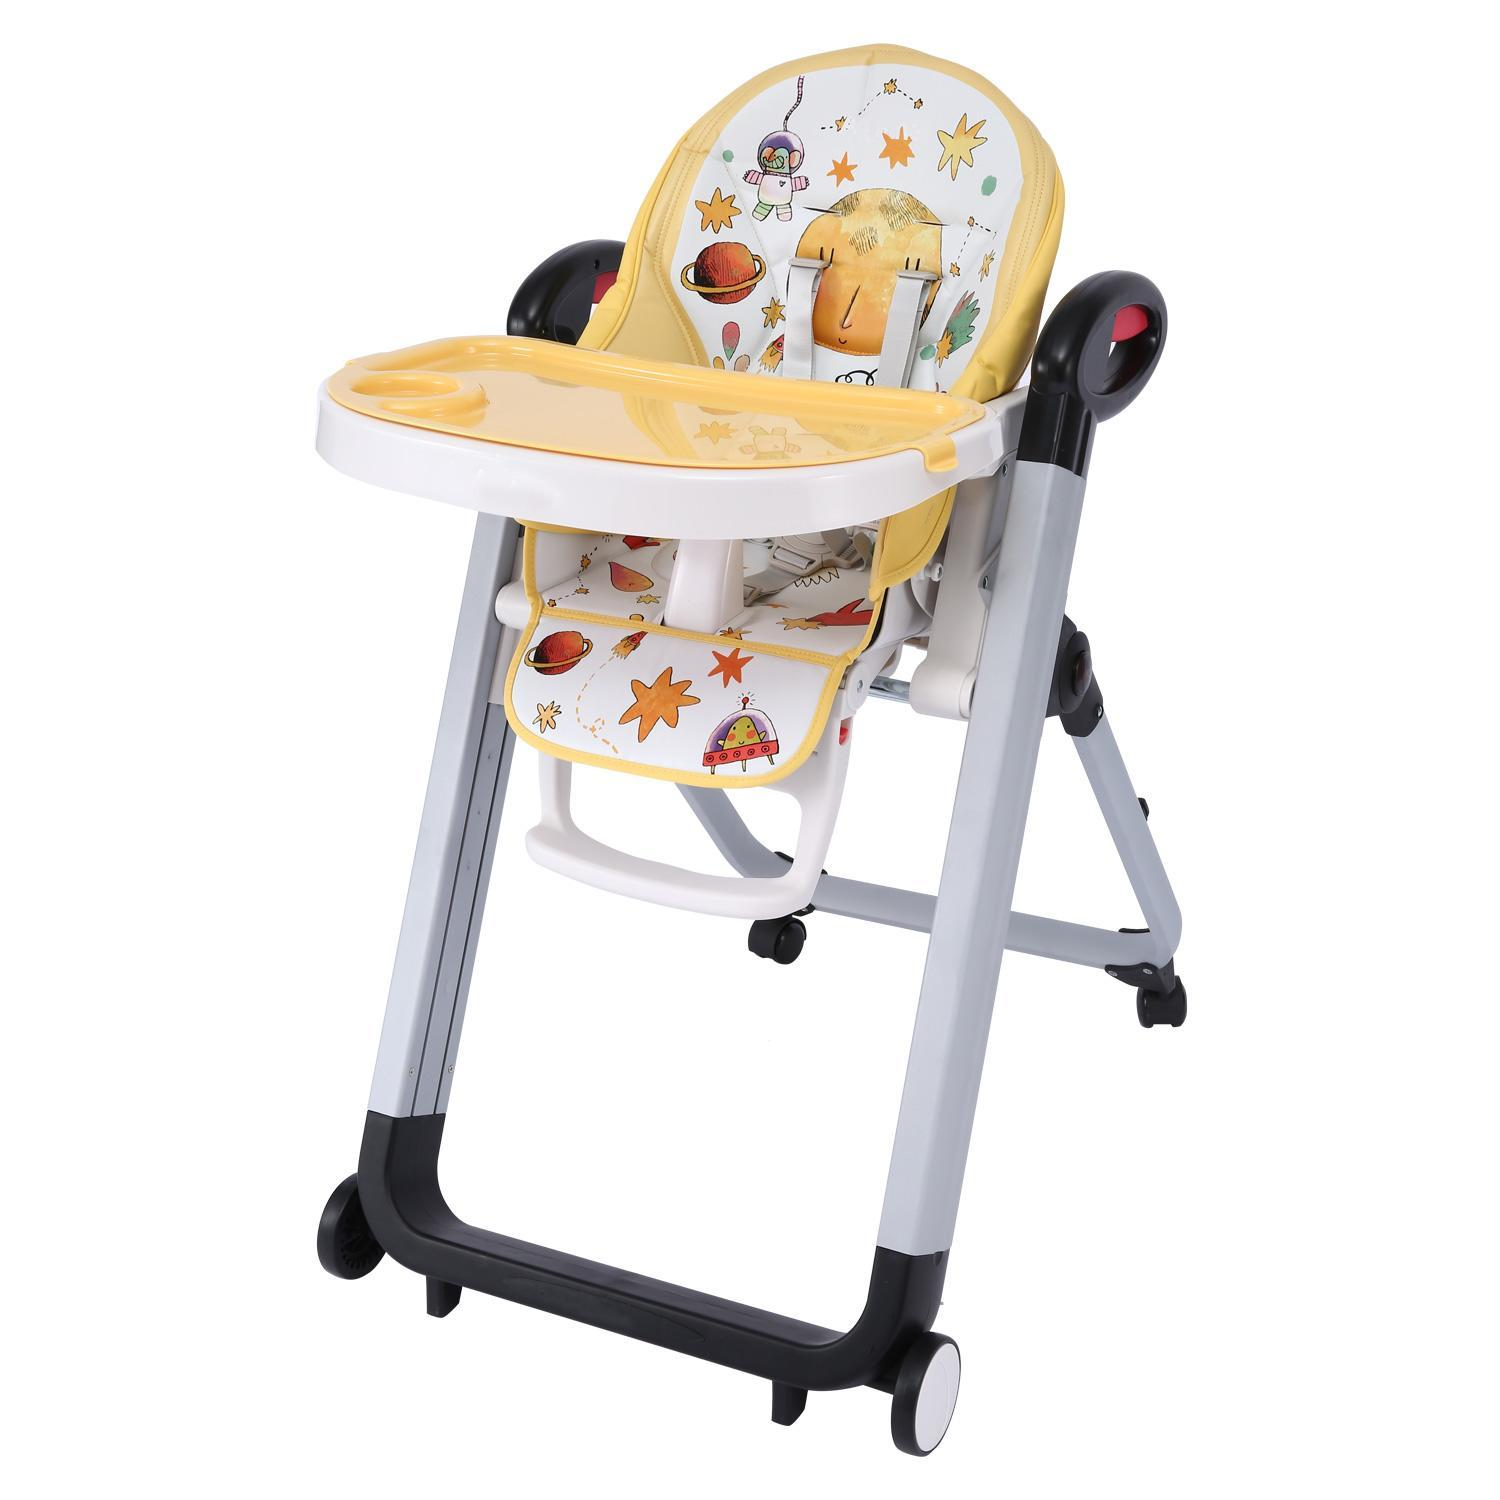 Multi-functional Baby High Feeding Chair.Full Recline Siesta Highchair, Portable Telescopic Child Dining Table Chair Supporting 45lbs Margot